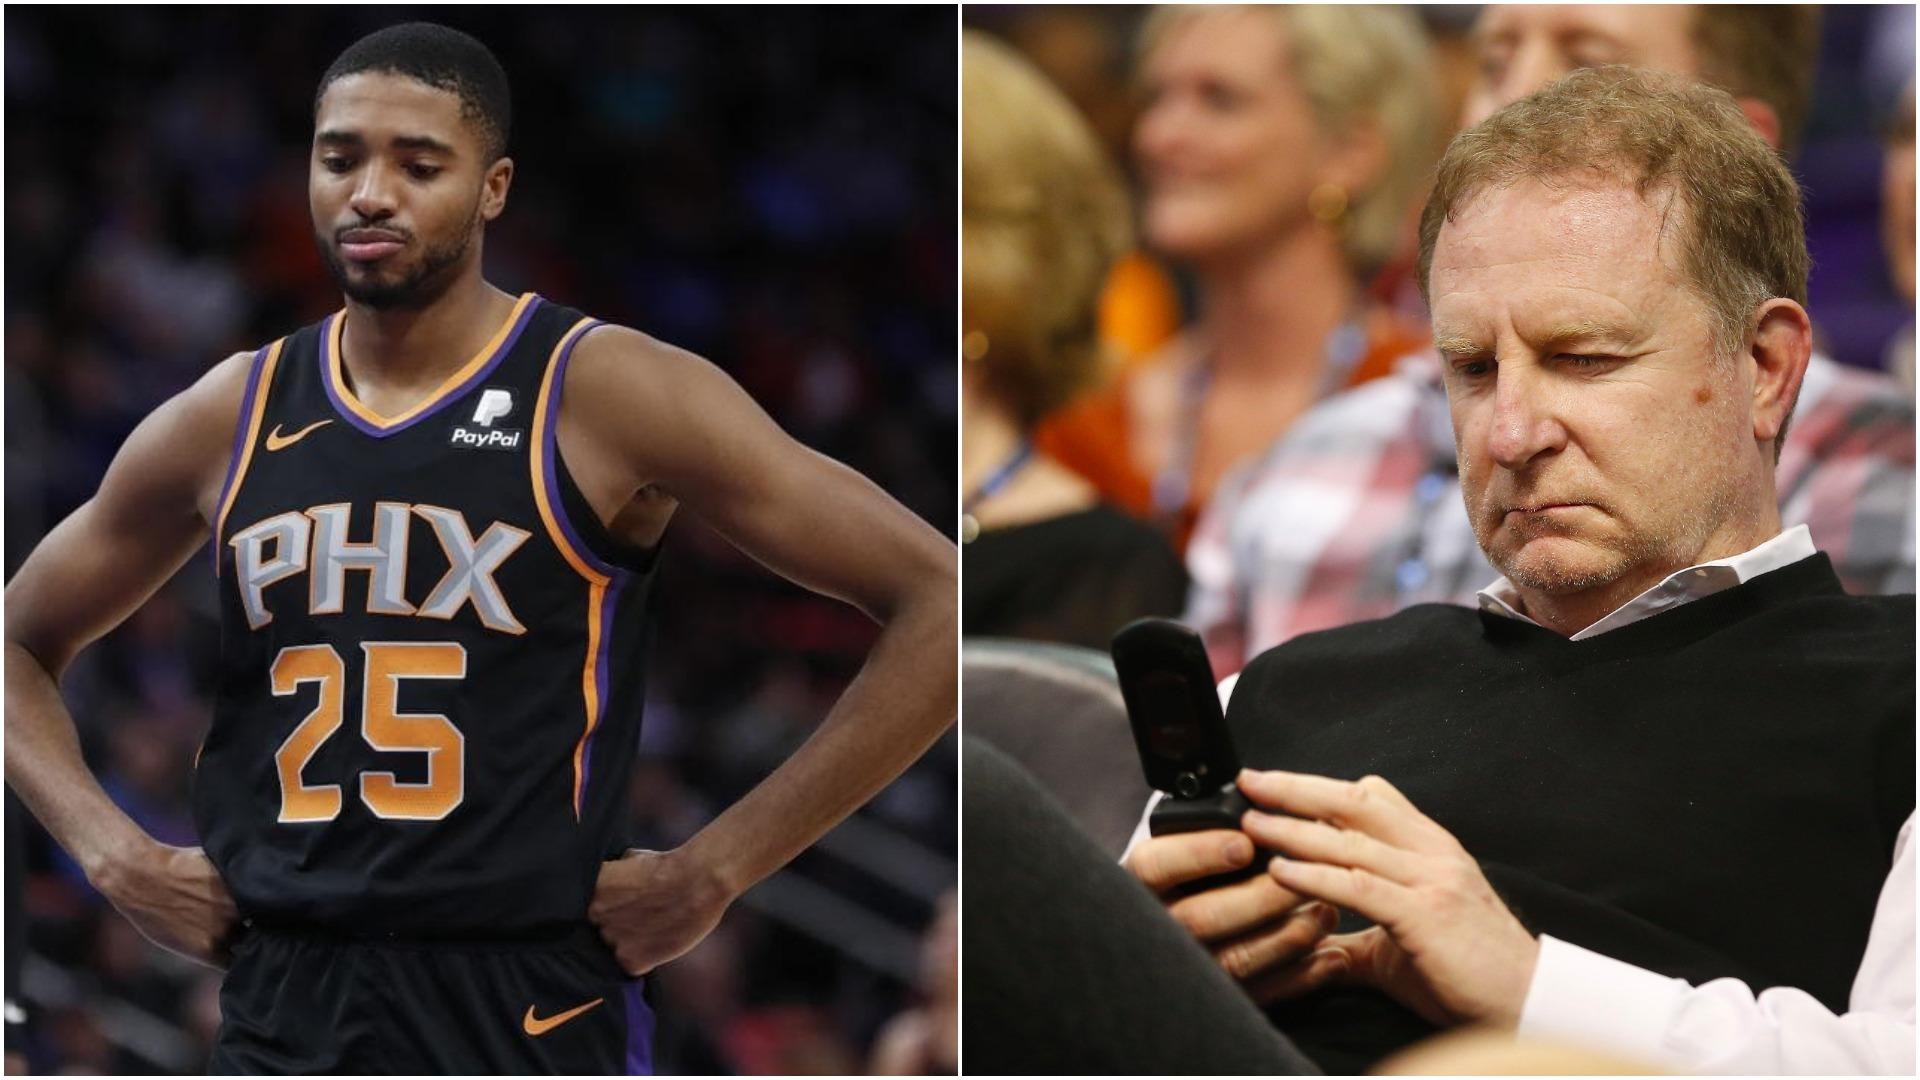 Phoenix Suns Owner Robert Sarver Responds to Las Vegas Relocation Rumors